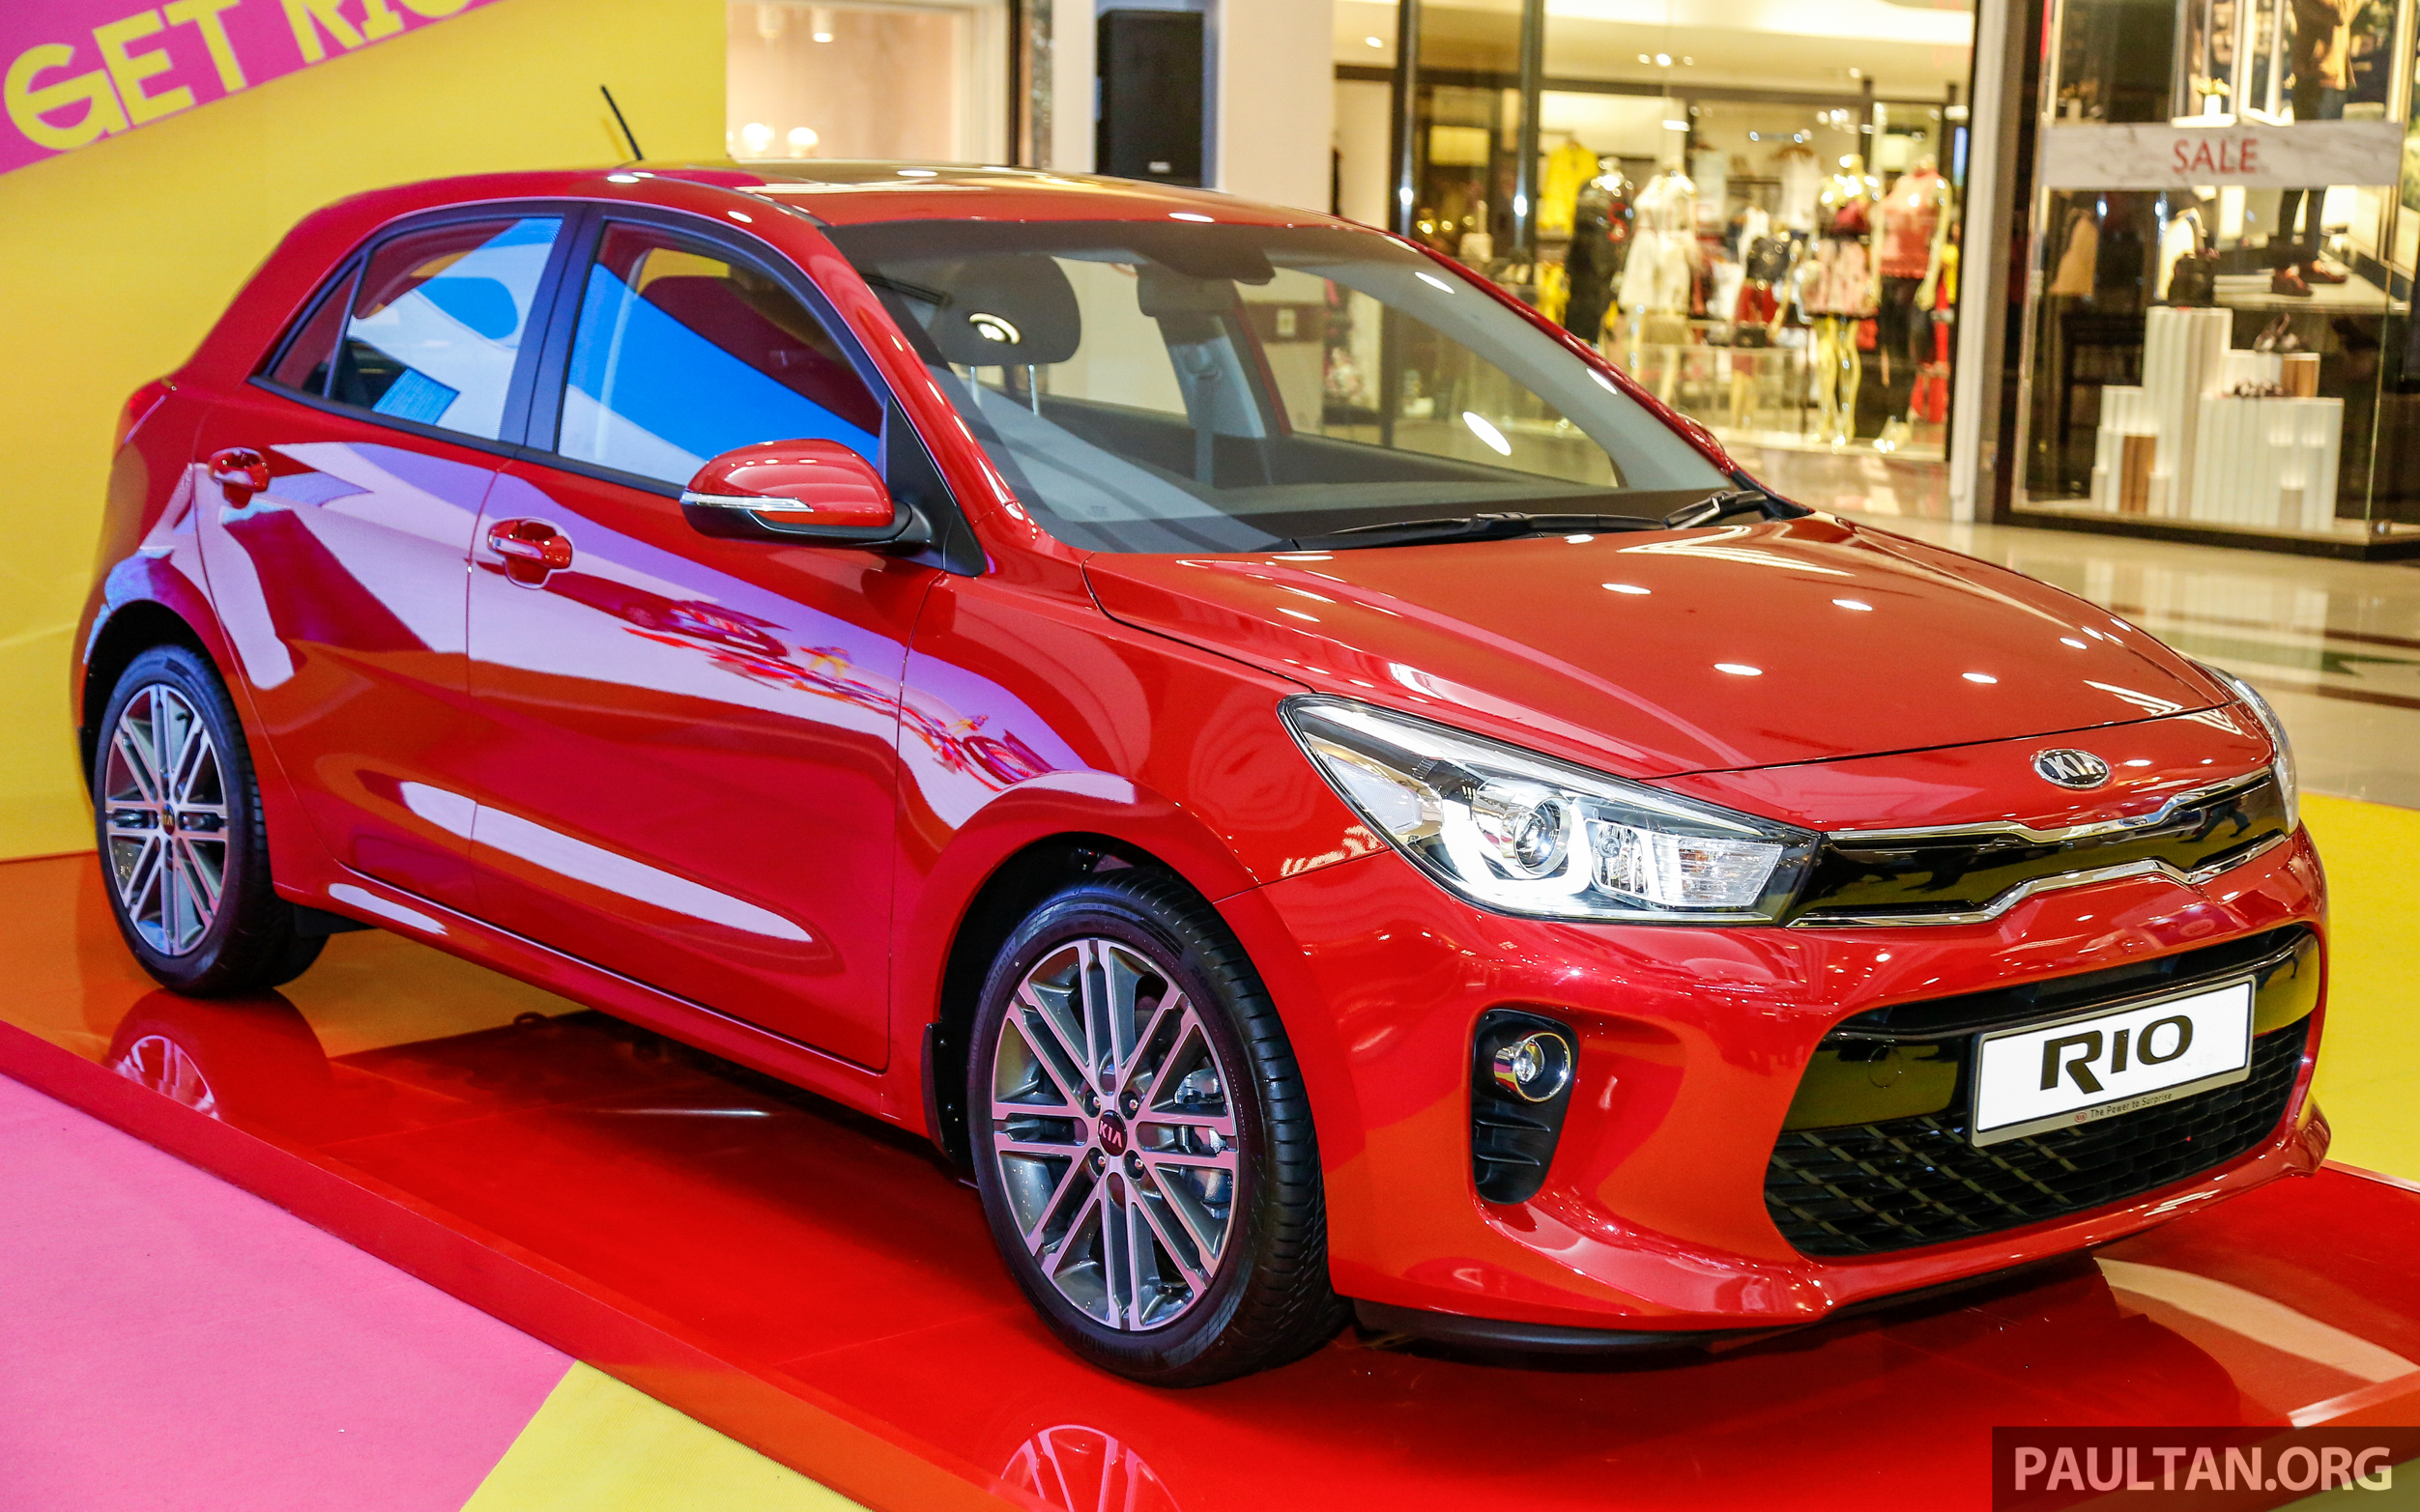 2017 kia rio 1 4 mpi launched in malaysia rm80k. Black Bedroom Furniture Sets. Home Design Ideas